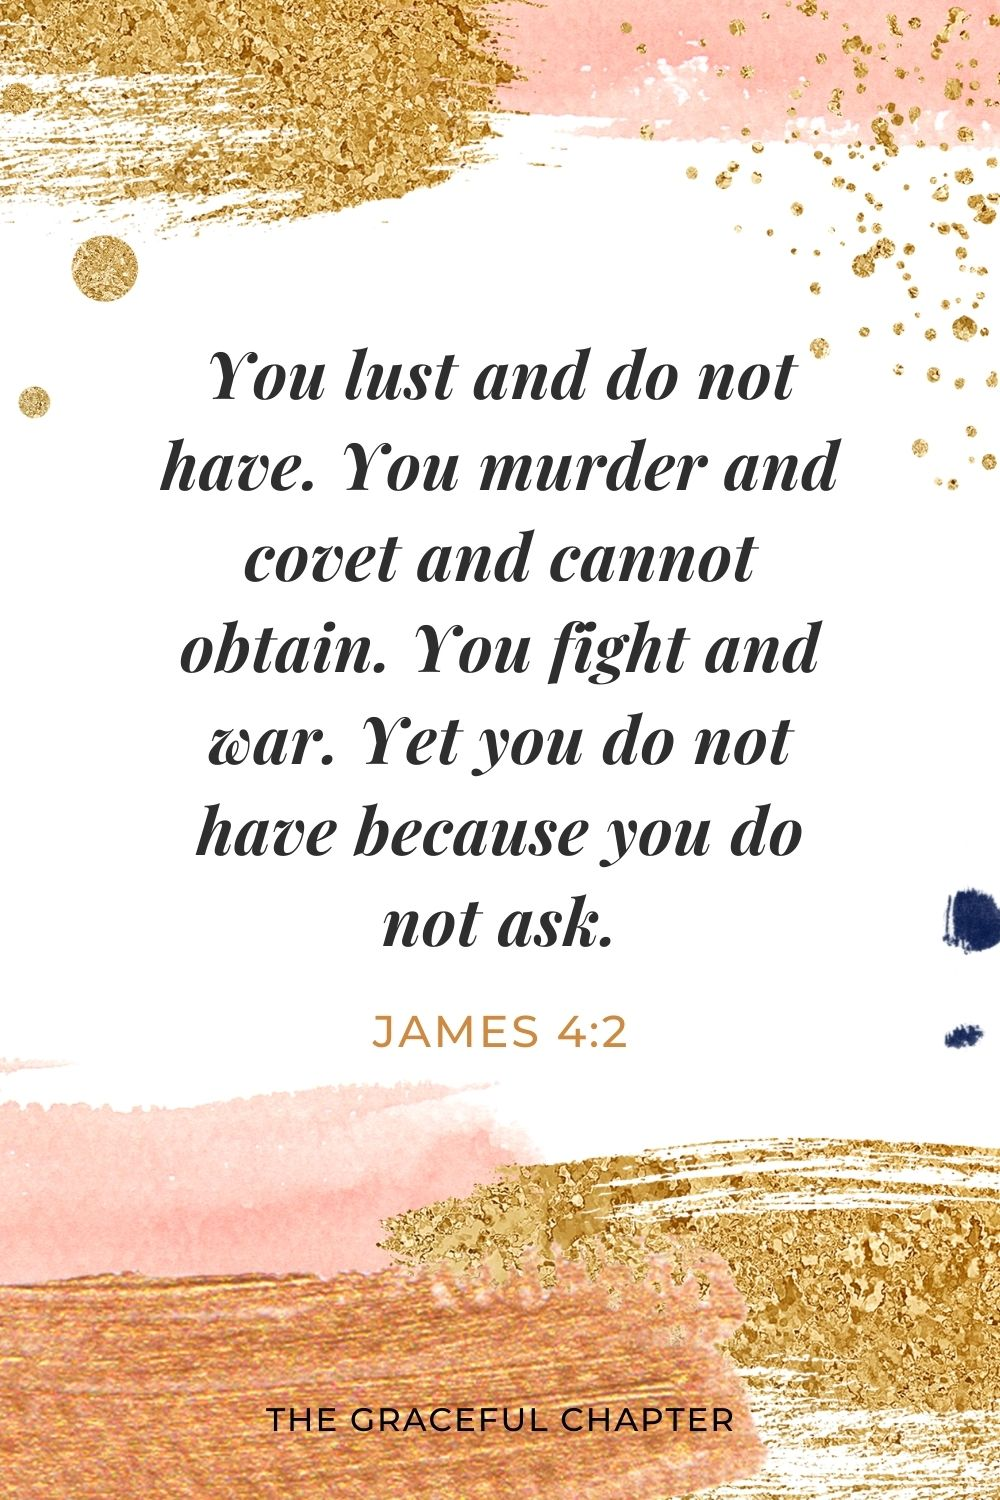 You lust and do not have. You murder and covet and cannot obtain. You fight and war. Yet you do not have because you do not ask. James 4:2